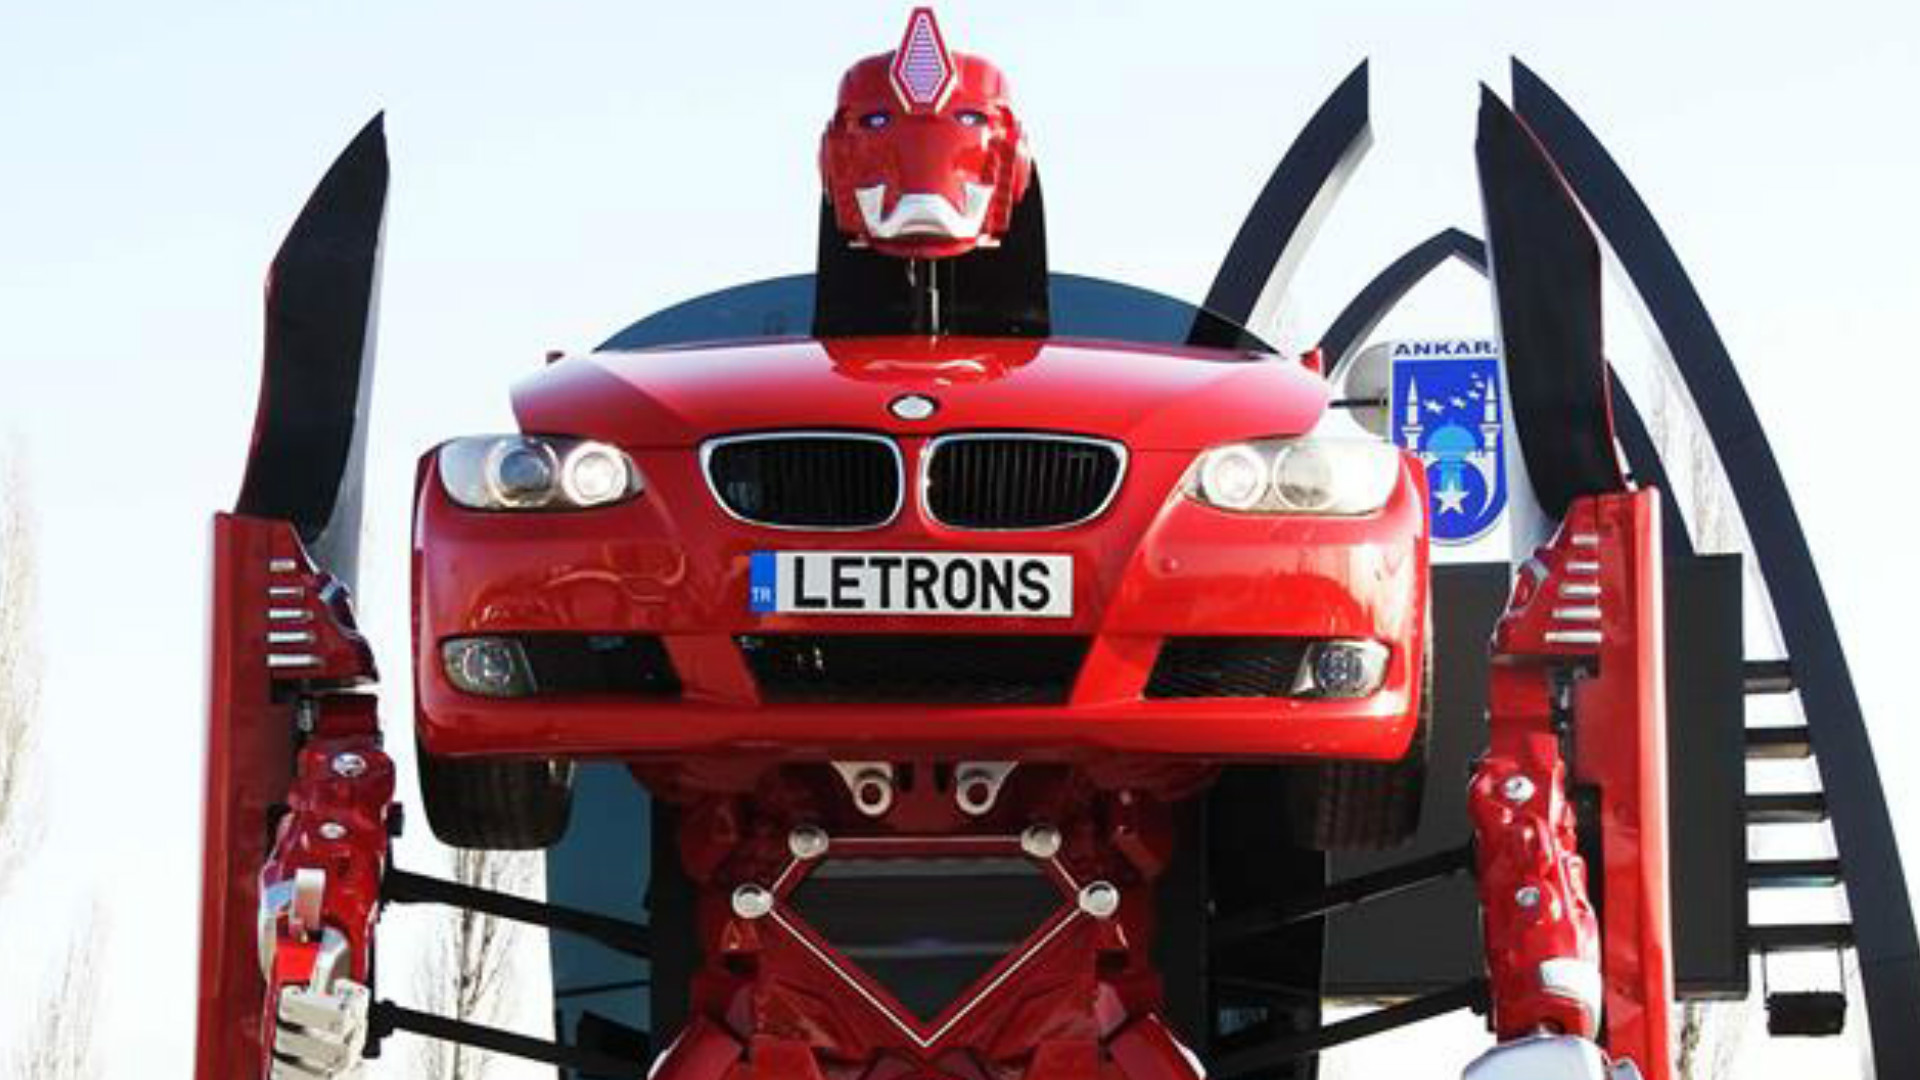 Letrons Transformers in real life